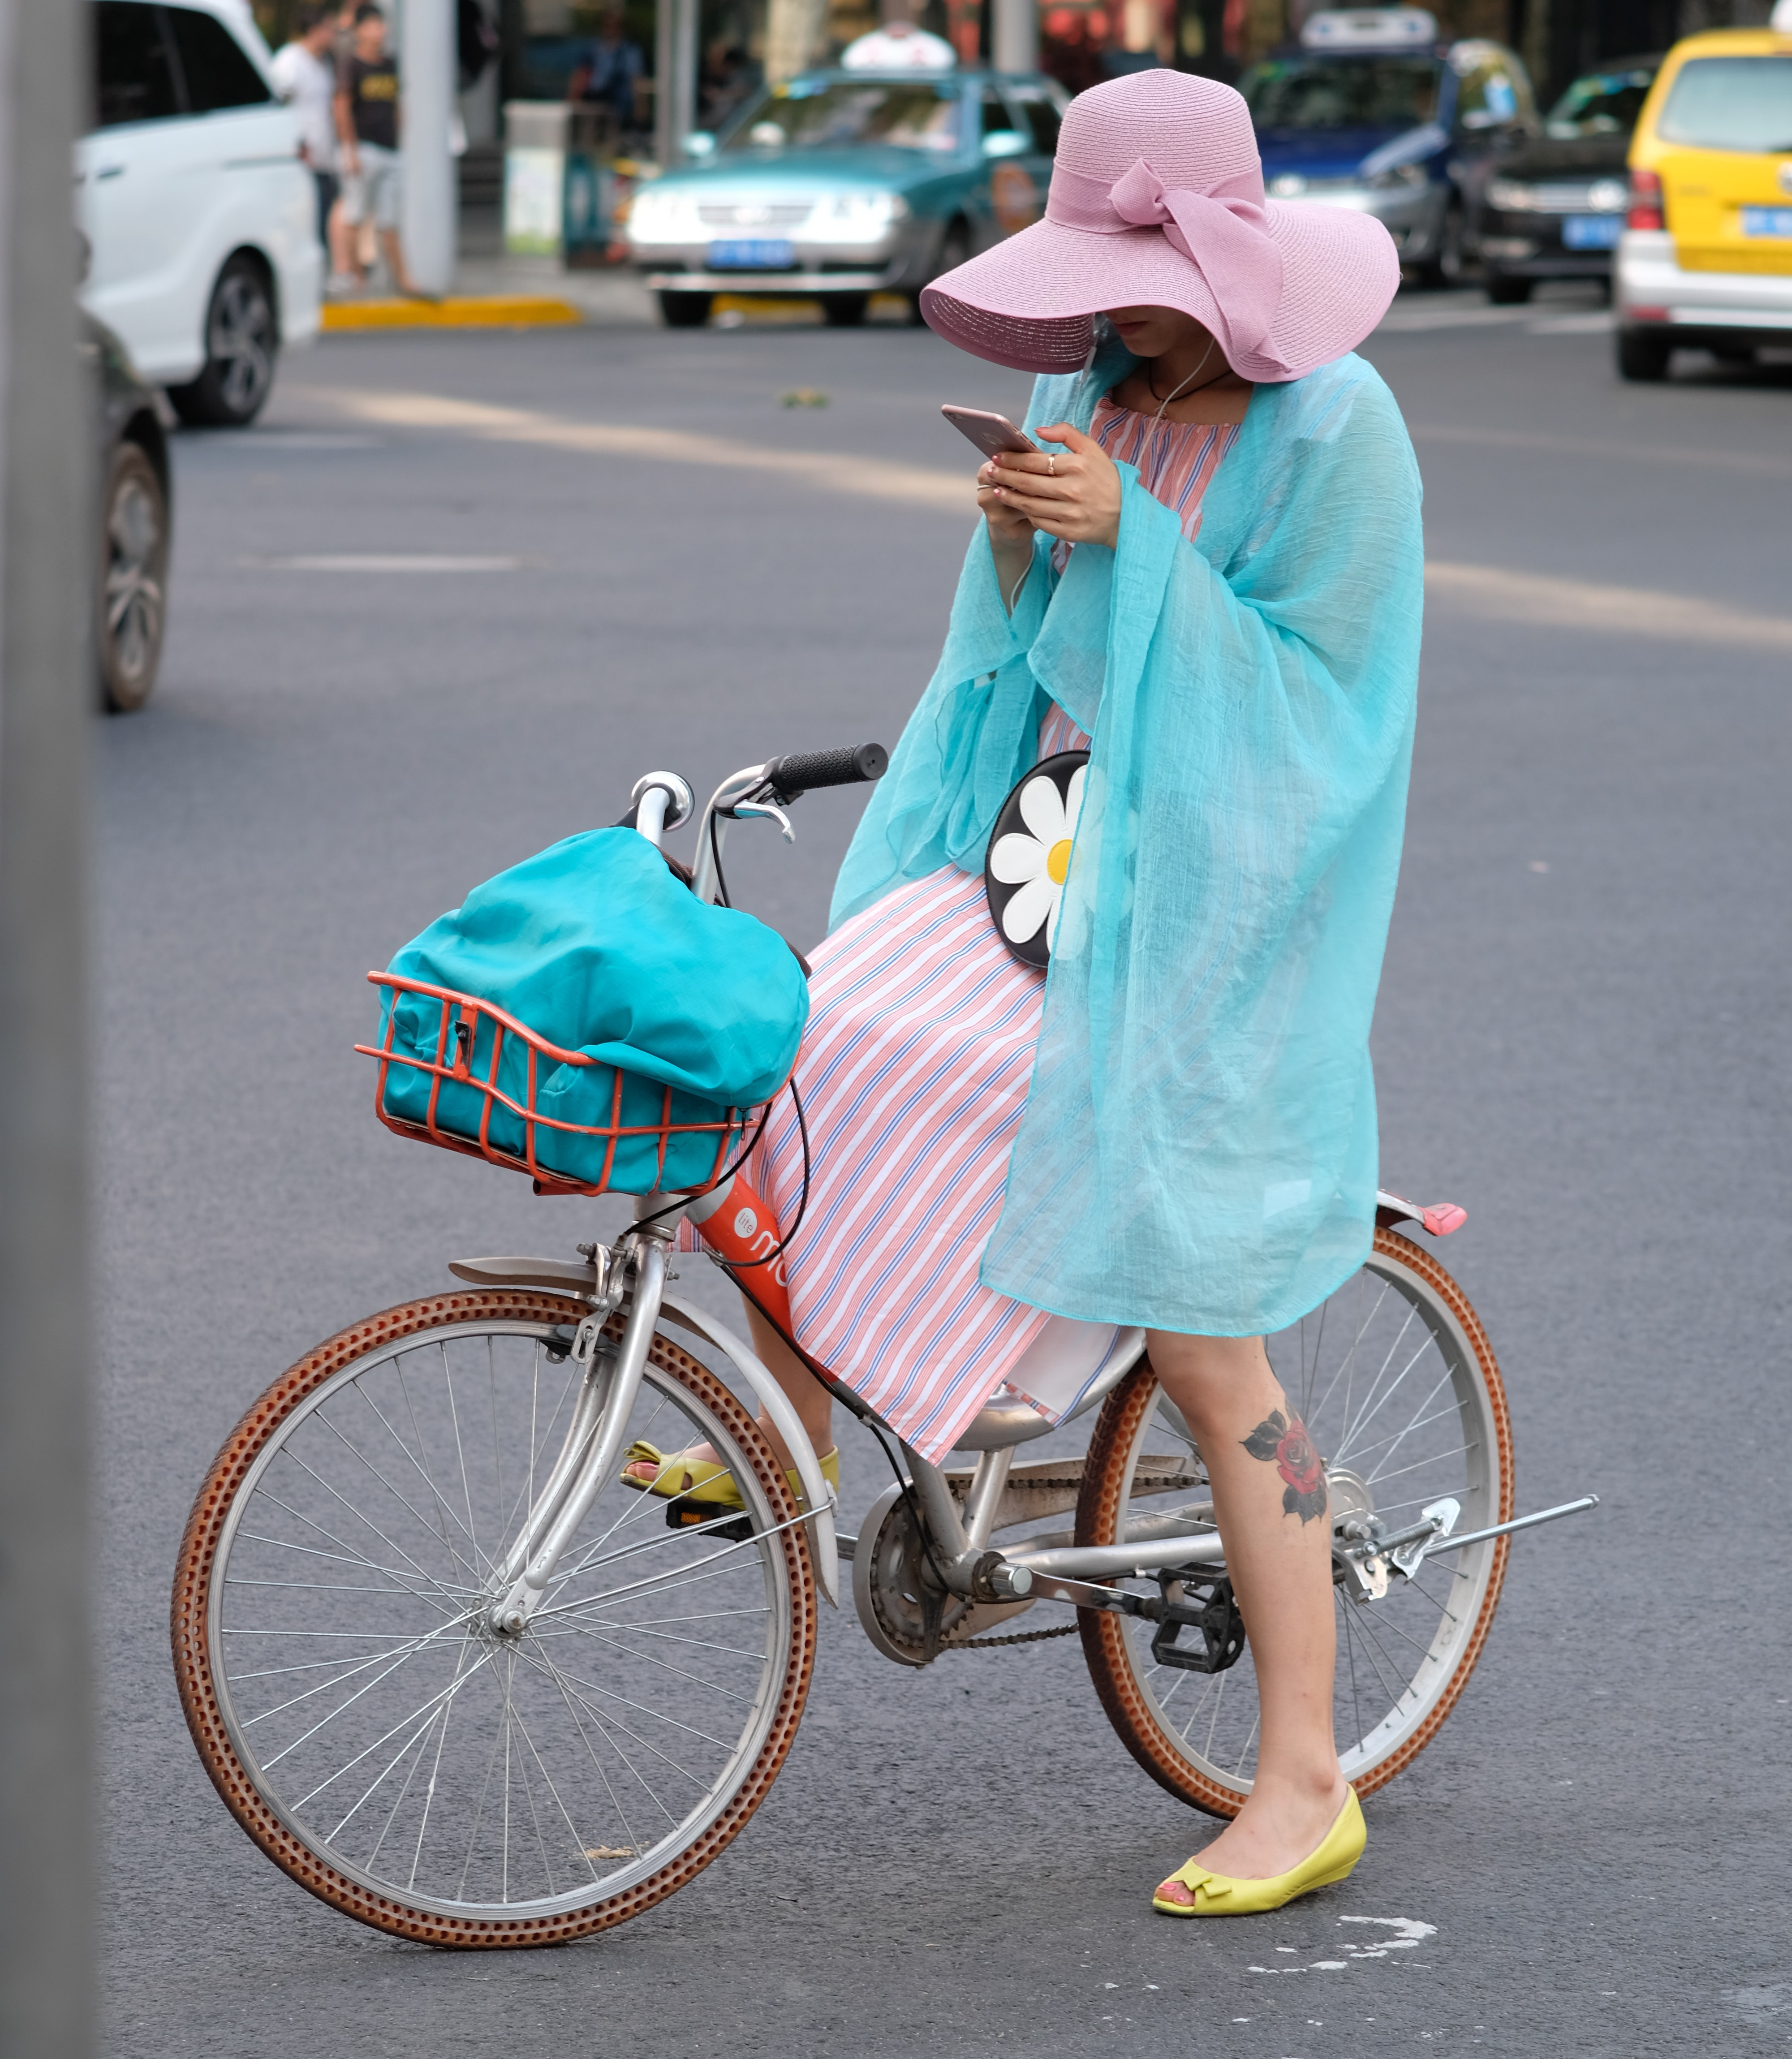 woman riding red bike stop center of road holding smartphone